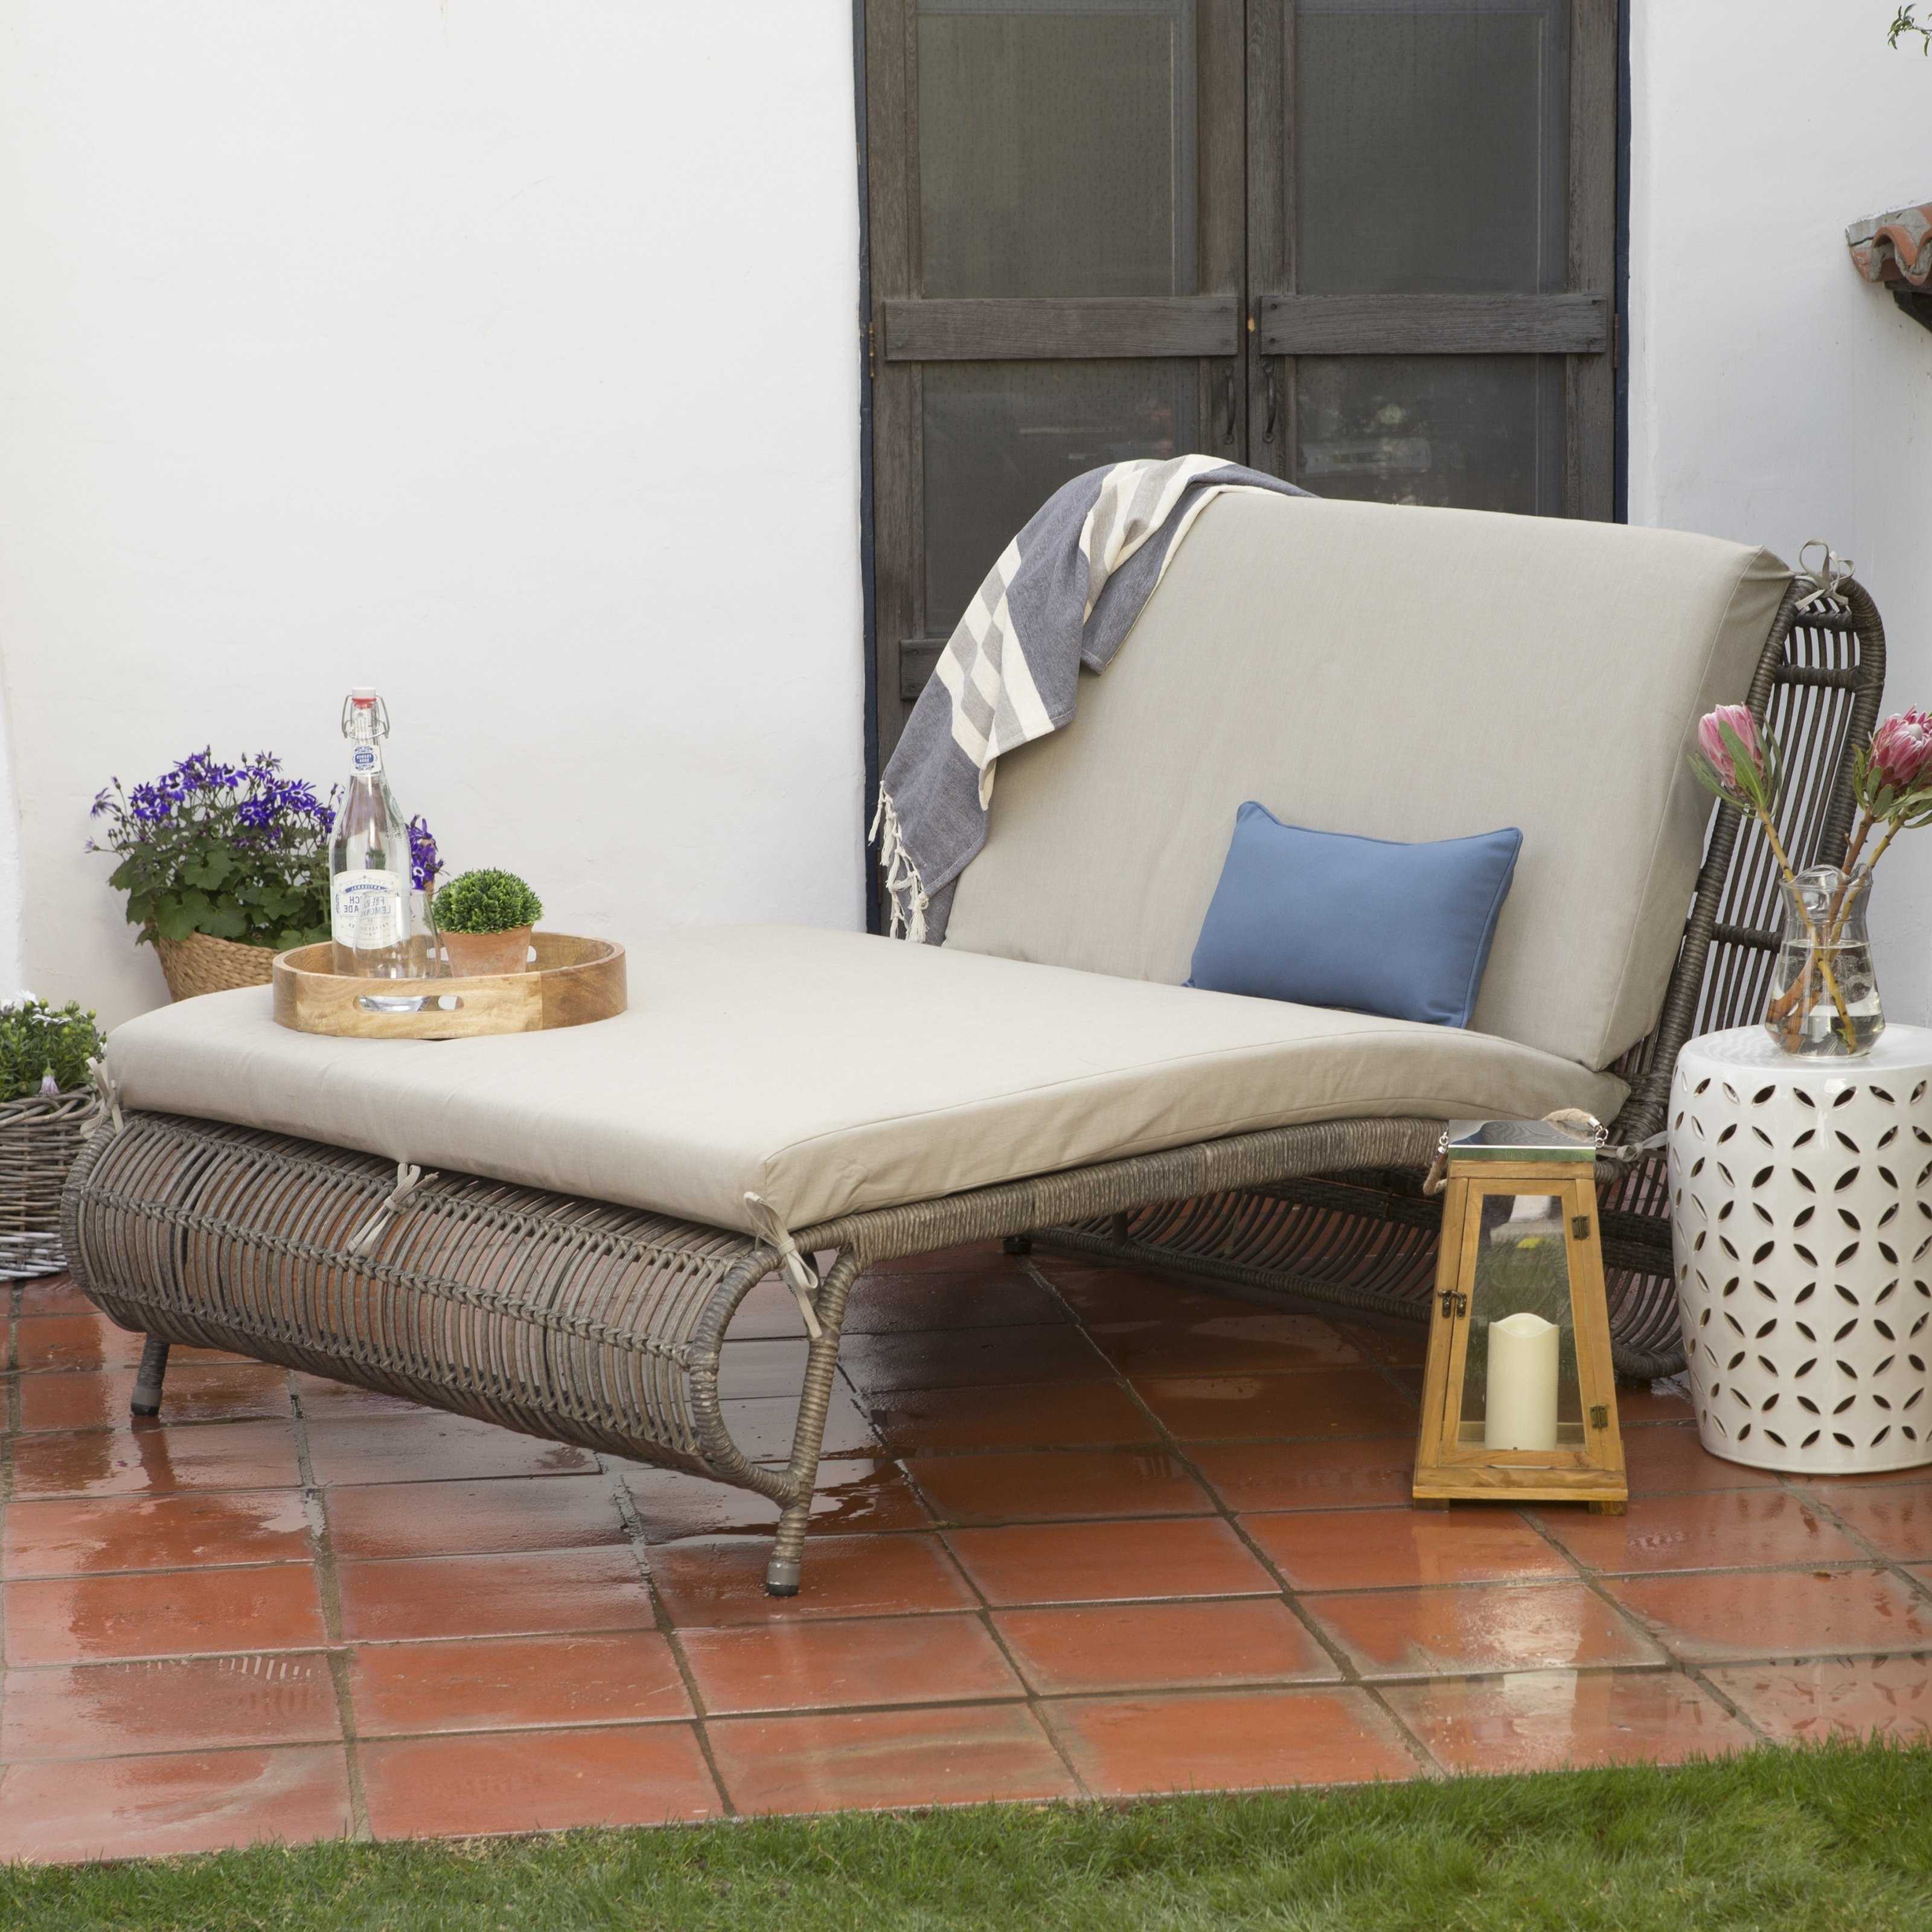 Popular Lounge Chair : Lounge Discount Outdoor Chaise Lounge Outdoor With Regard To Oversized Chaise Lounges (View 10 of 15)